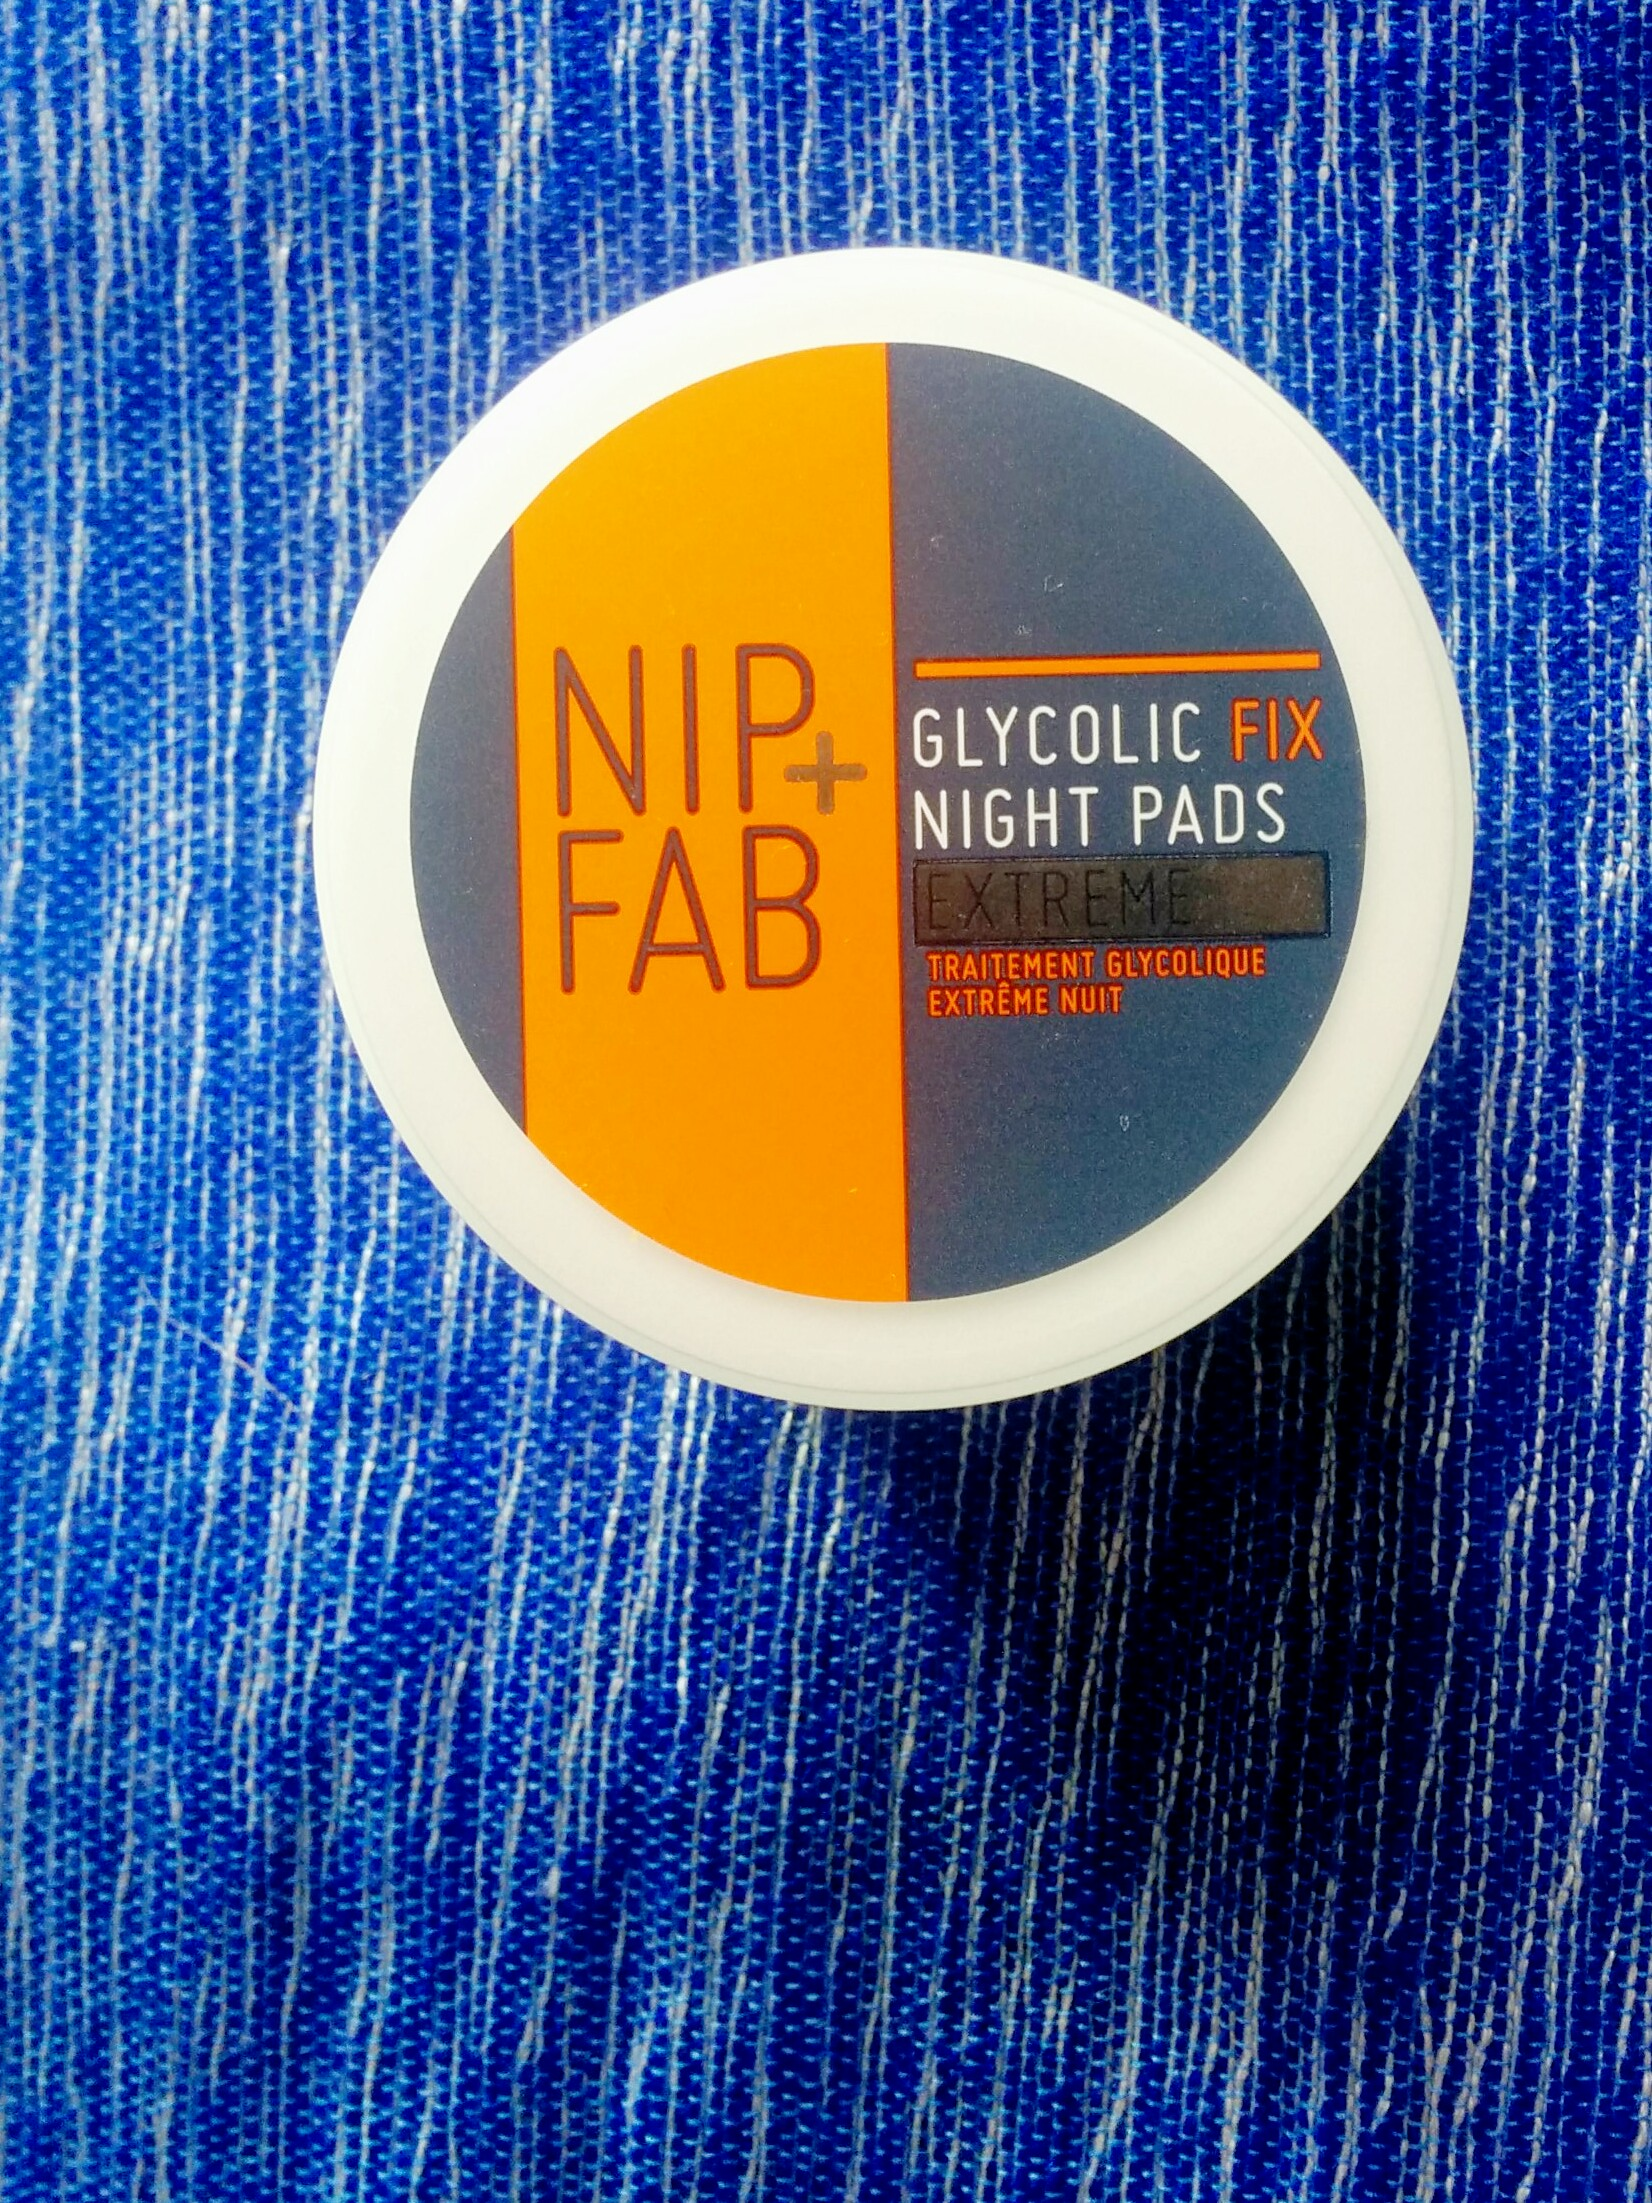 Nip+Fab Glycolic Extreme night pads